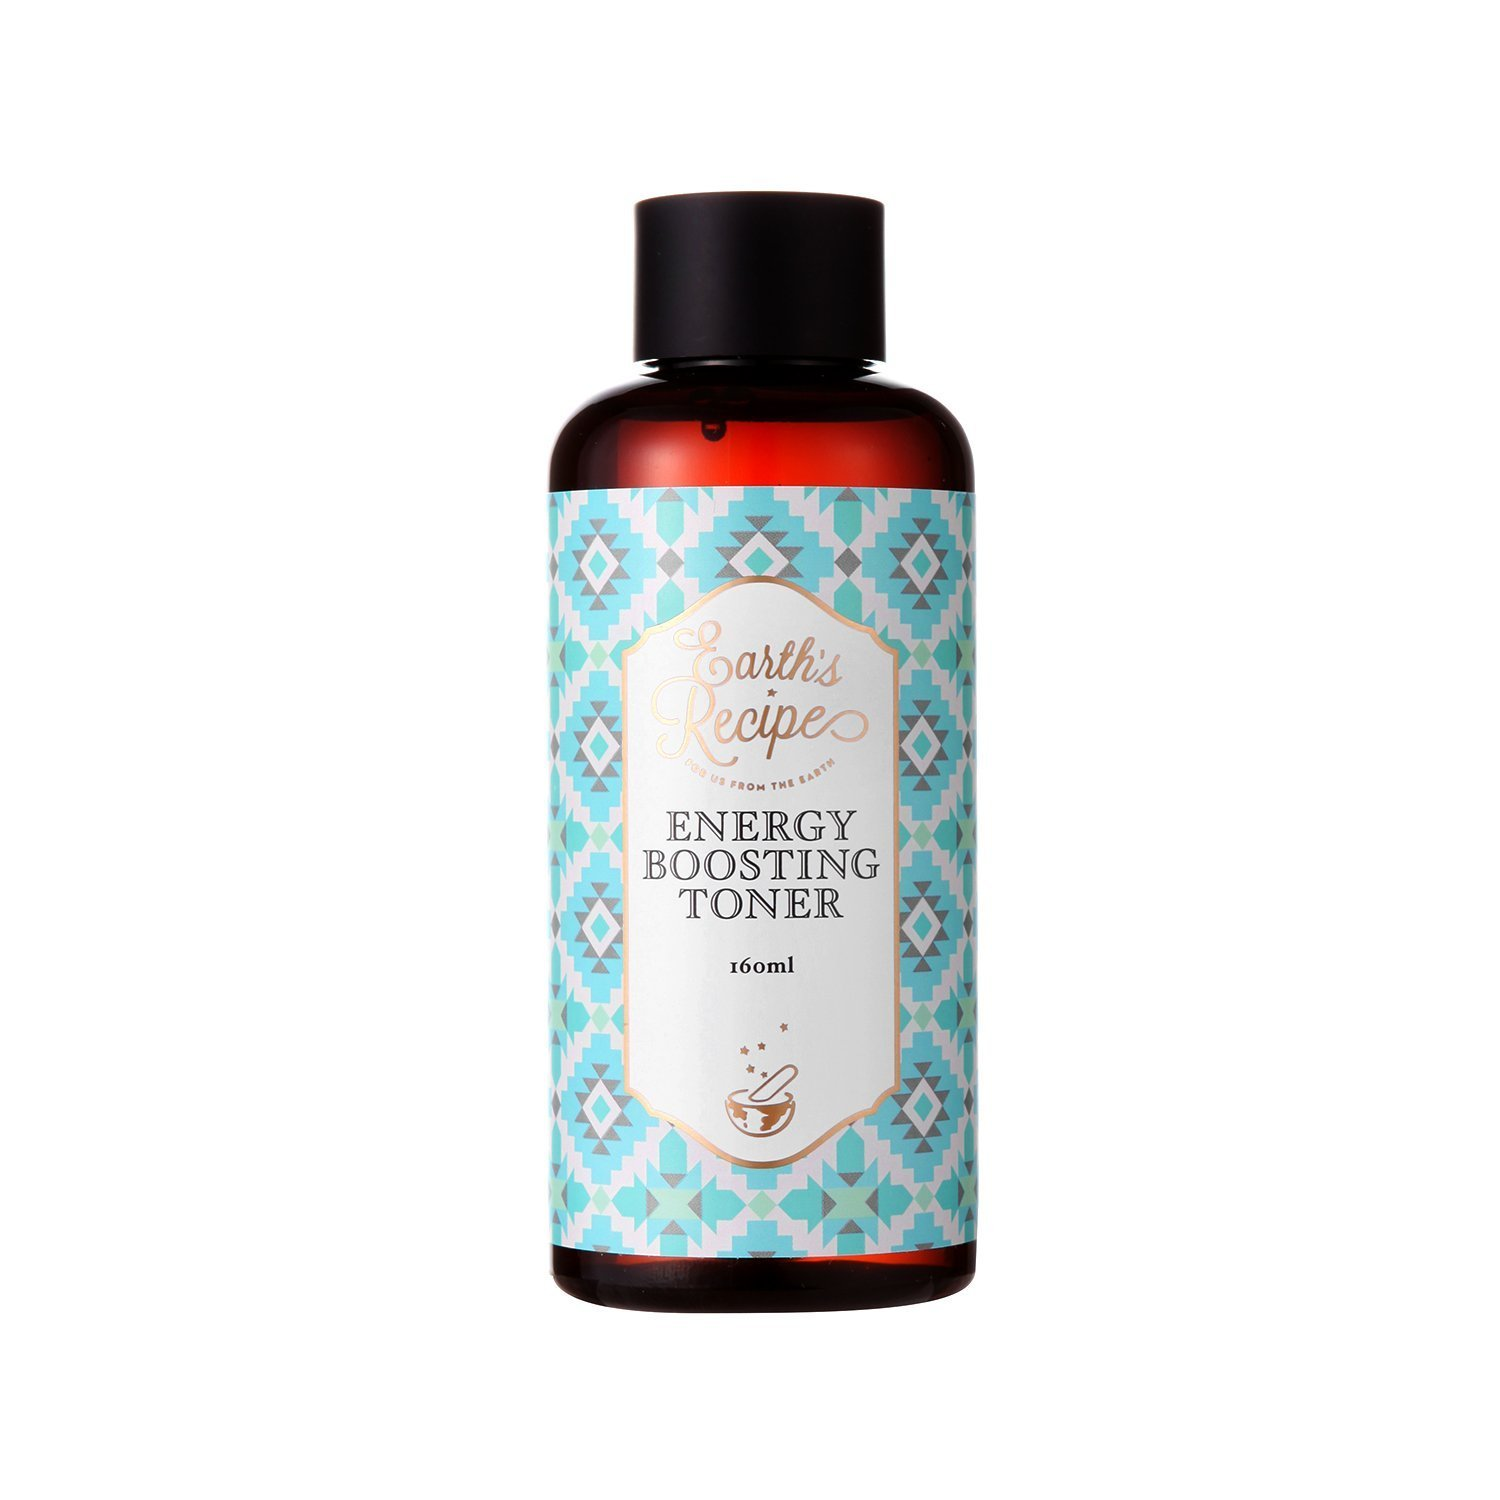 Earth's Recipe Energy Boosting Toner 160ml Alcohol Free Moisturizing Facial Toner with Tremella Mushroom 5x Moisture Boost Calming Hydrating Soothing Treatment for Sensitive and Breakout Prone Skin by Earth's Recipe